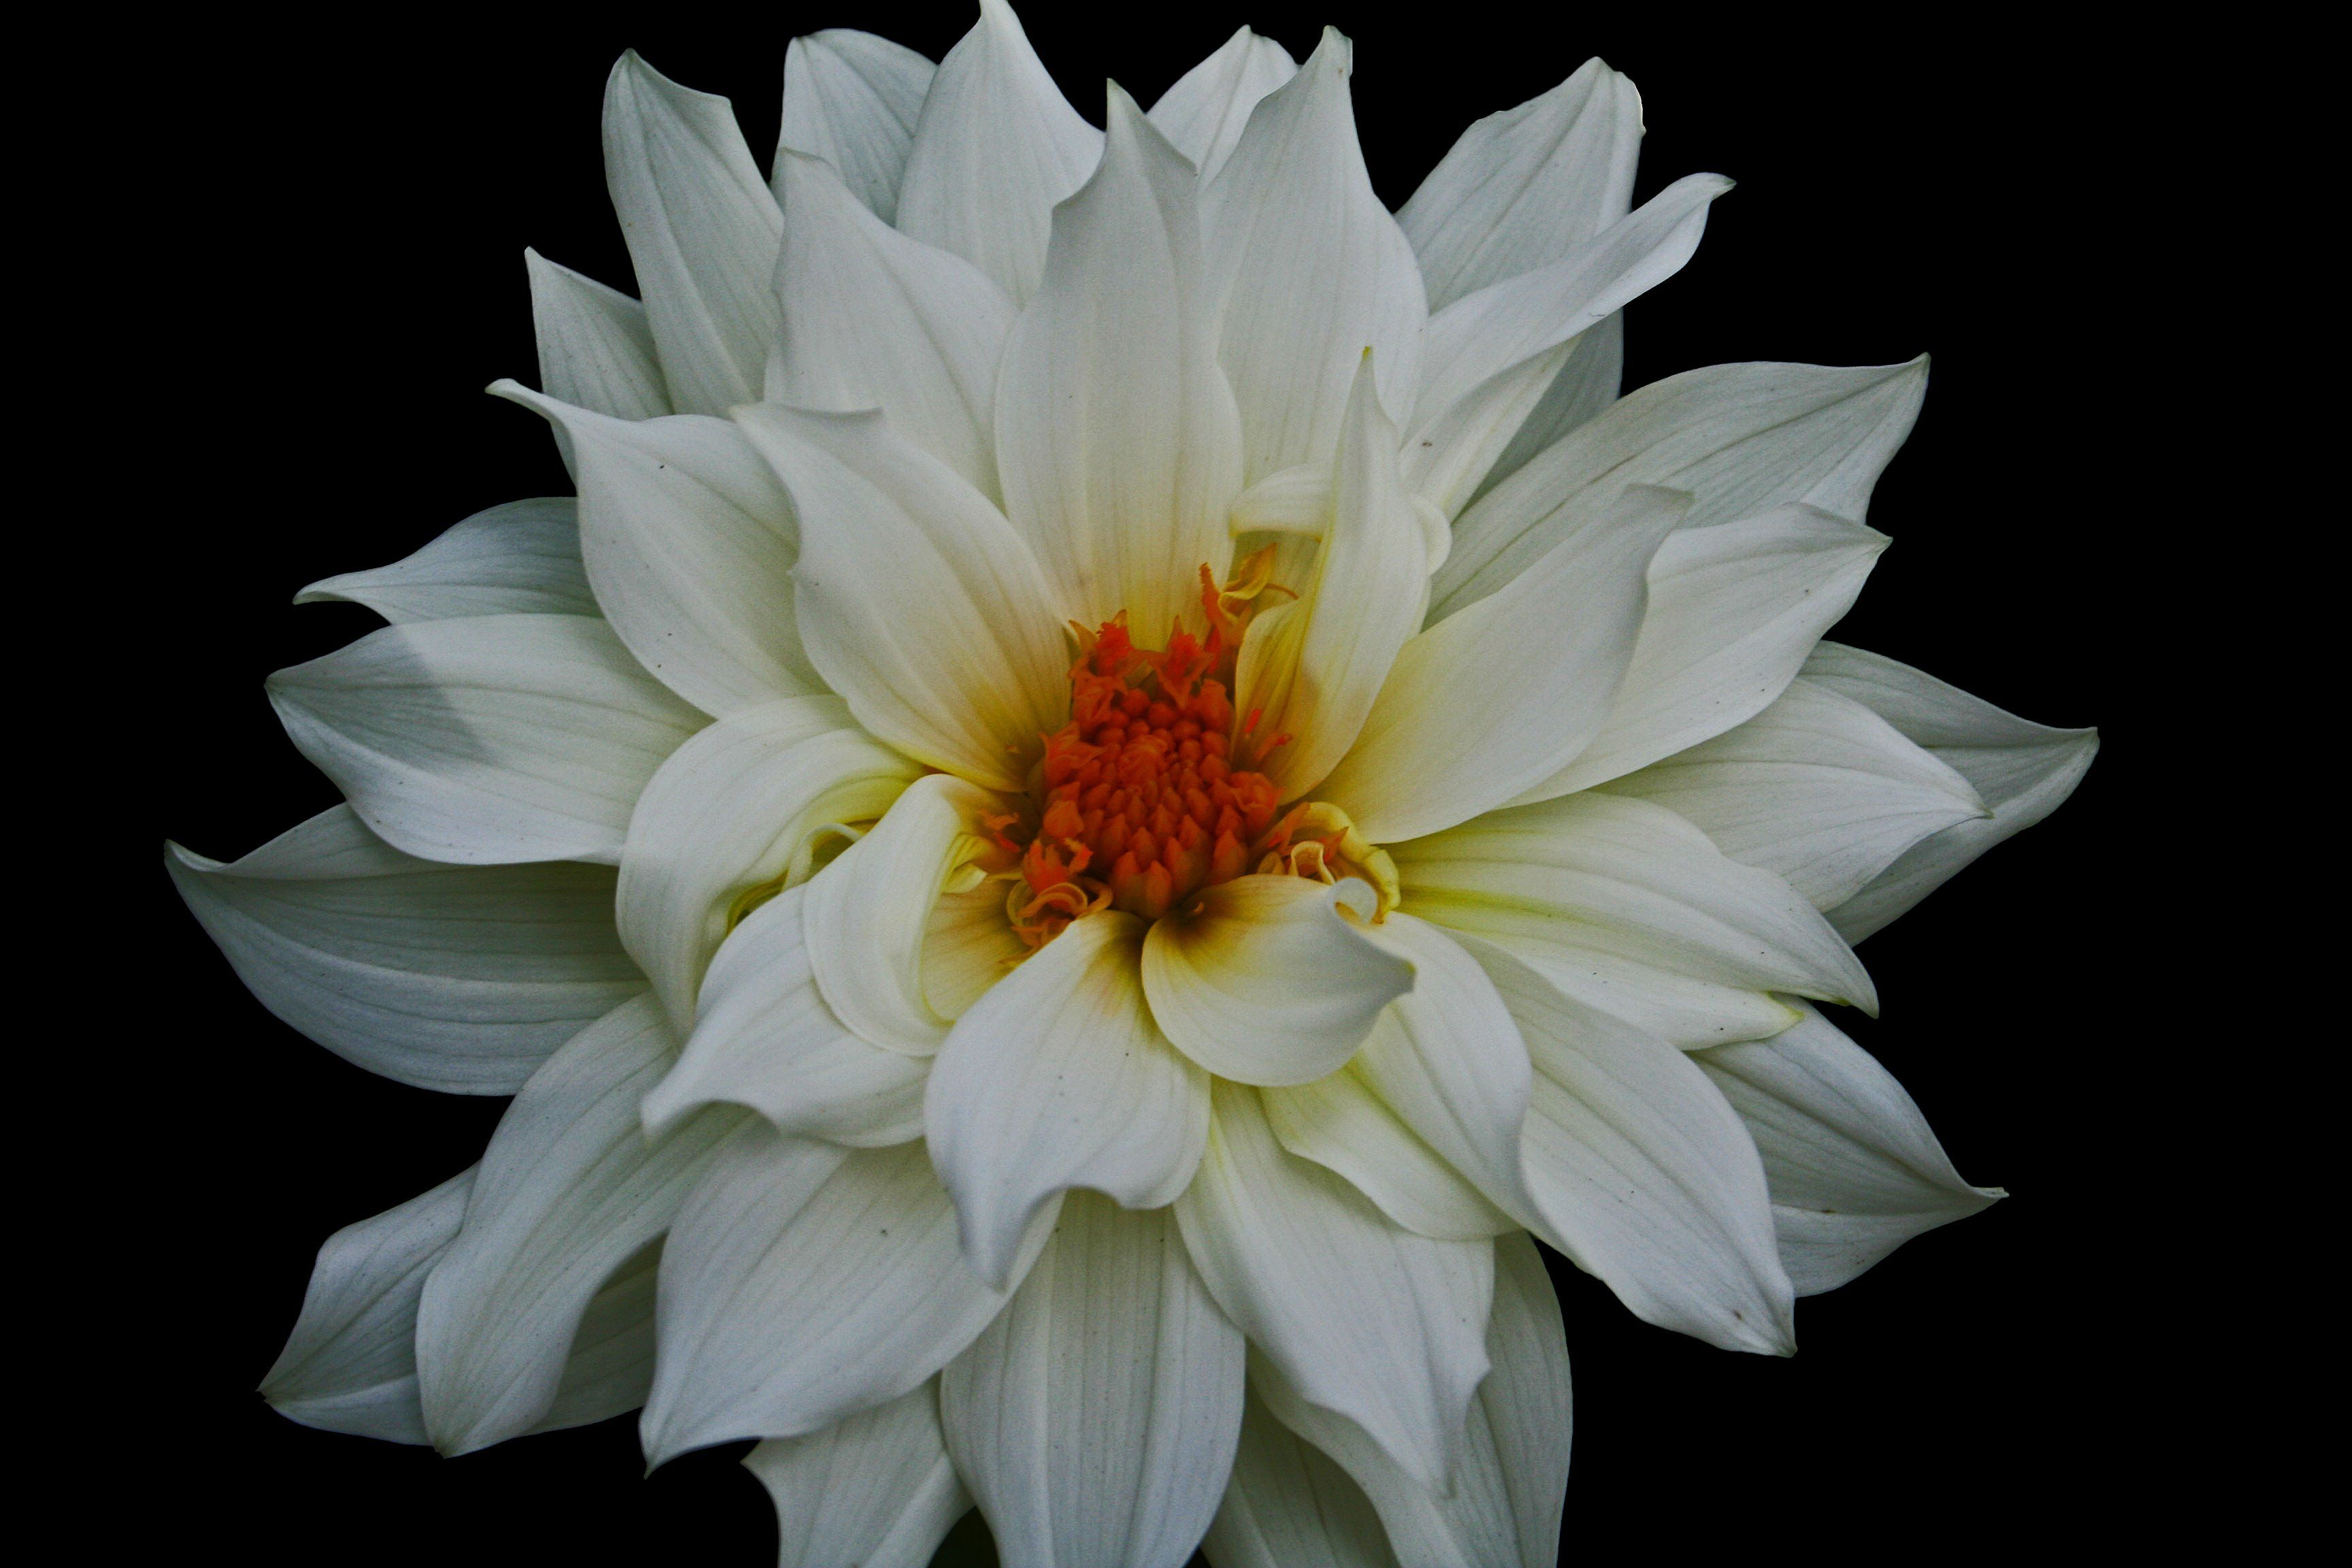 100 Types Of The Most Beautiful White Flowers For Your Garden